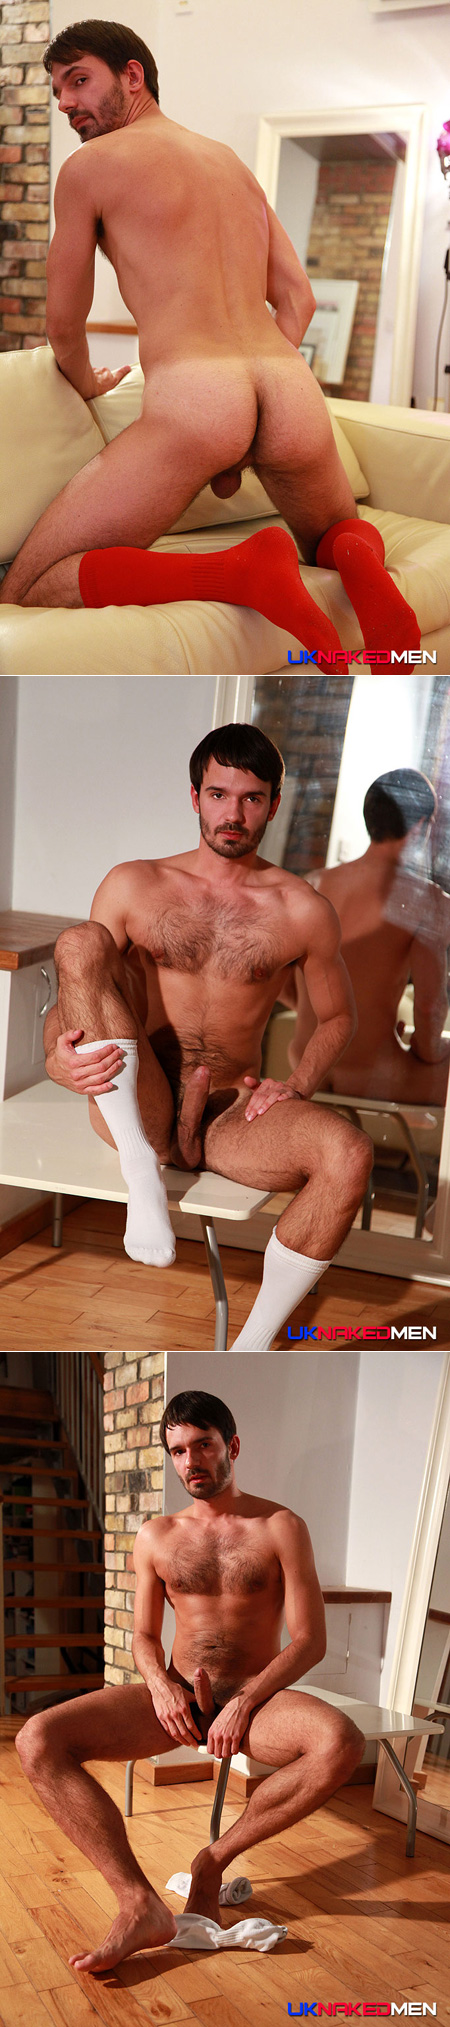 Tall hairy guy posing nude in OTC athletic socks.